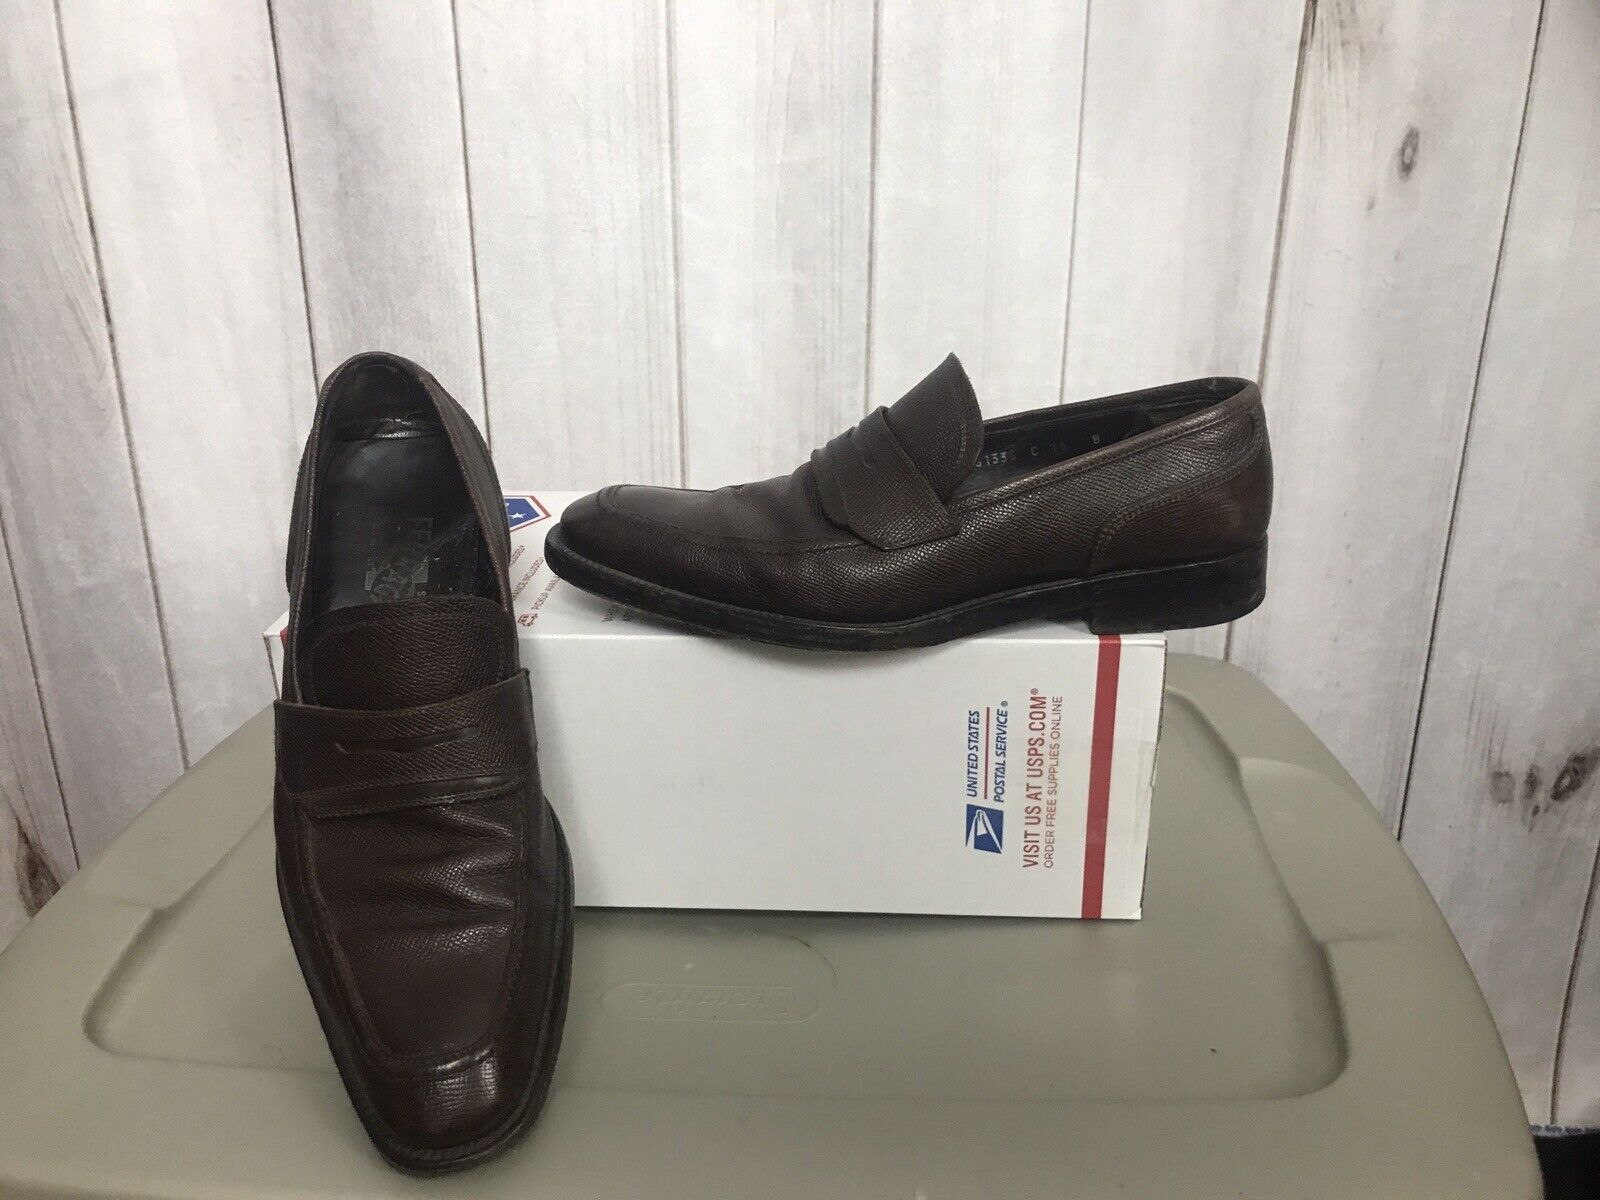 Salvatore Ferragamo Mens Brown Penny Loafers new shoes shoes  Size 8D UG61338